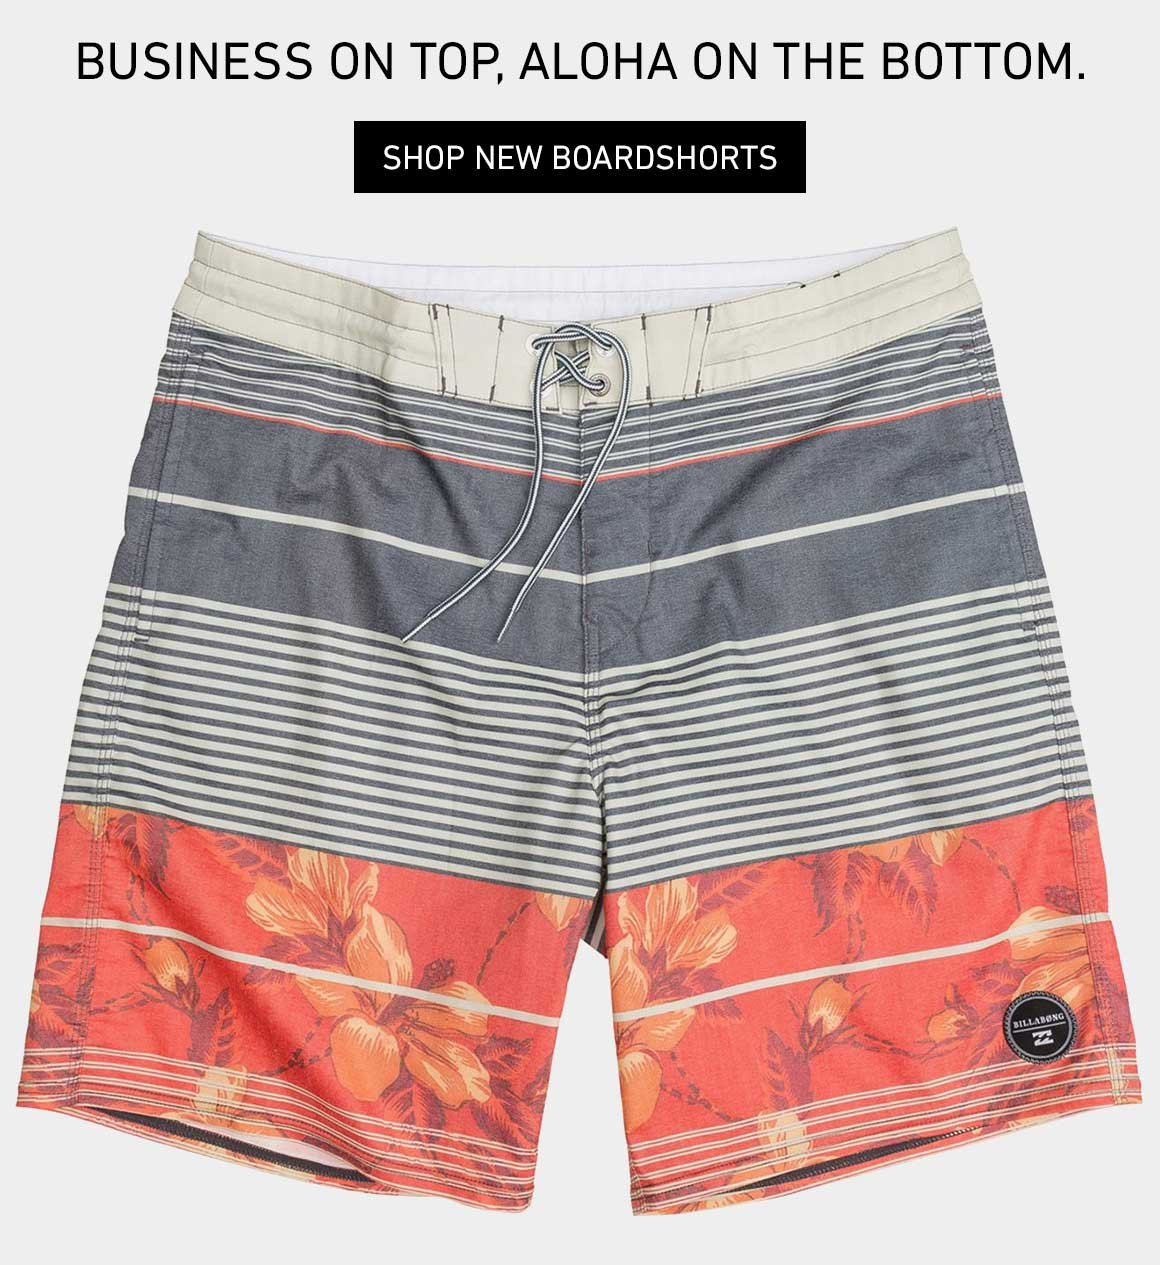 Contains Aloha Additive: New Boardshorts